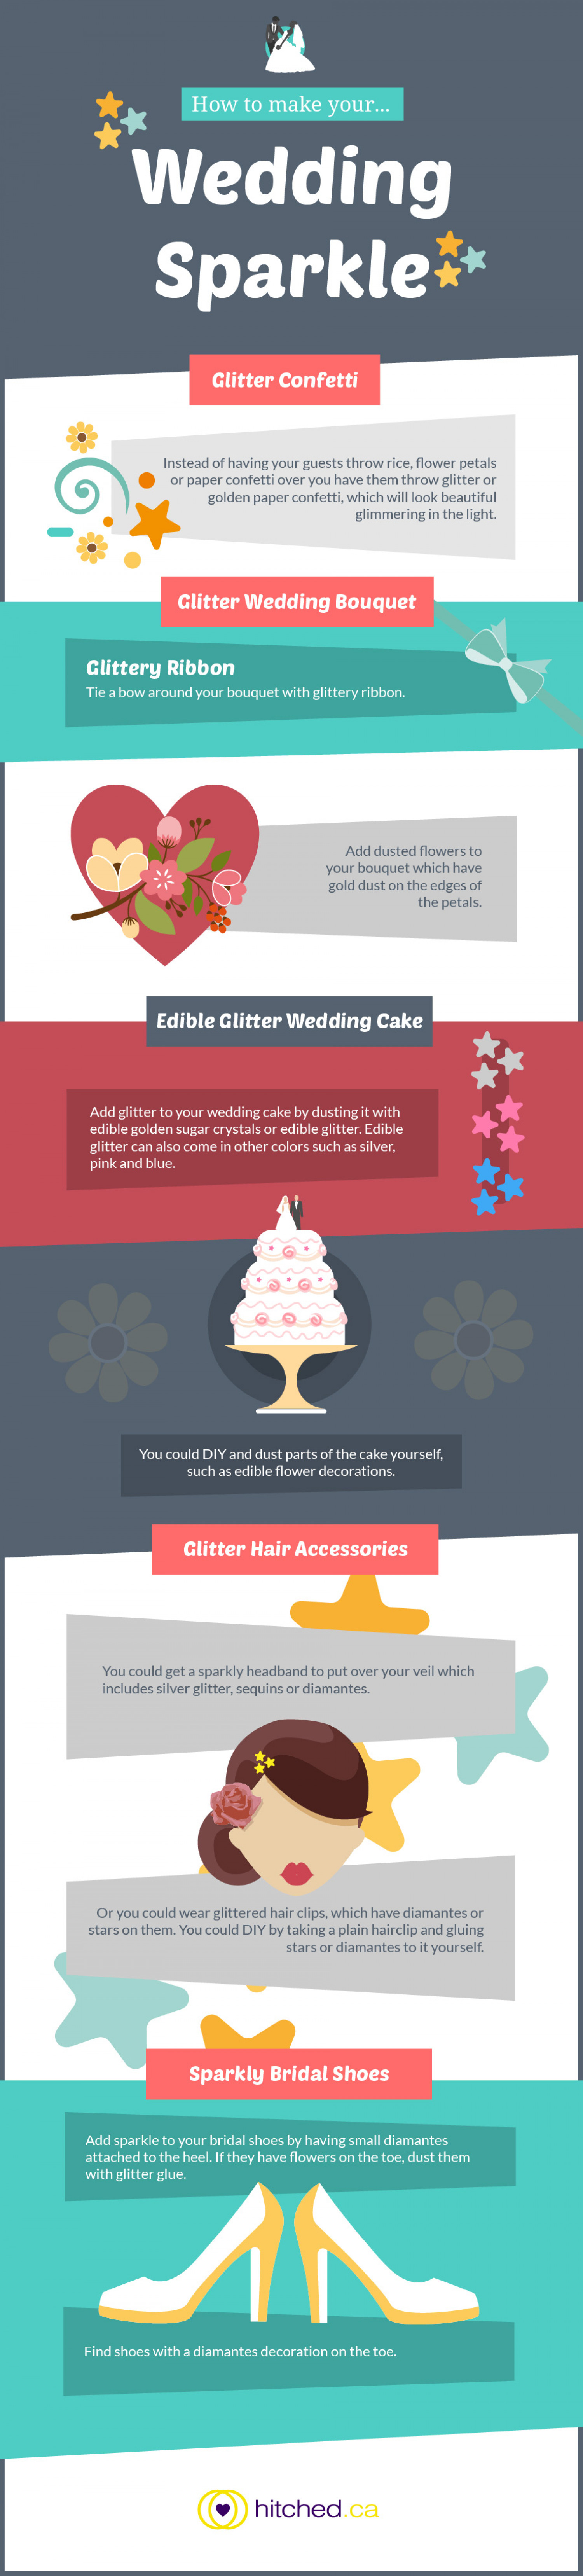 How To Make Your Wedding Day Sparkle  Infographic